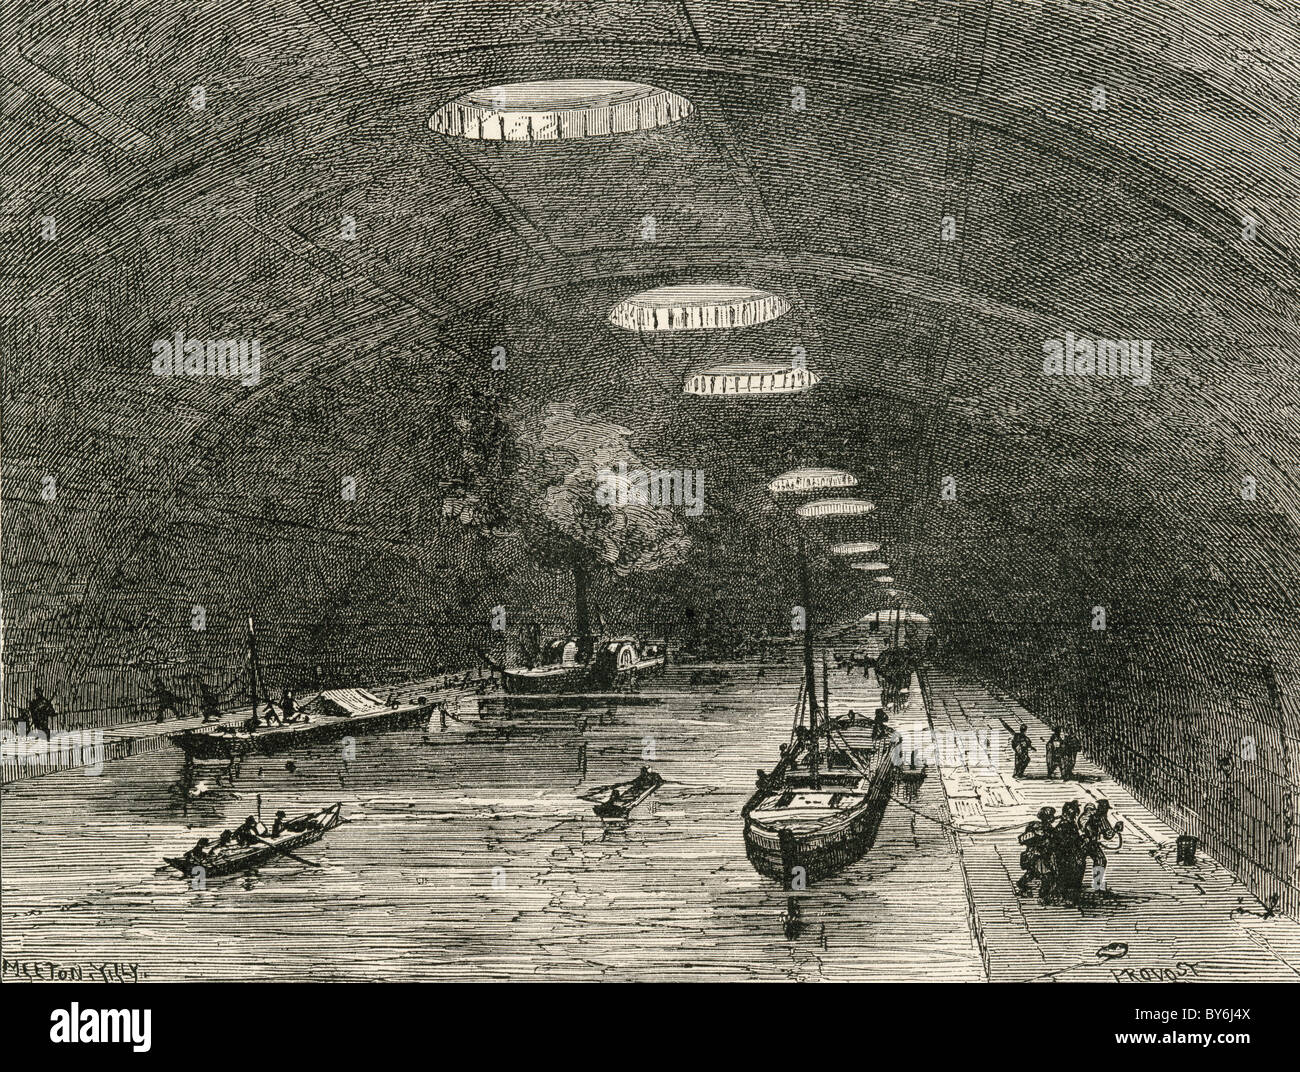 Canal Saint Martin, Paris, France, passing under the eastern part of the city, in the 19th century. - Stock Image